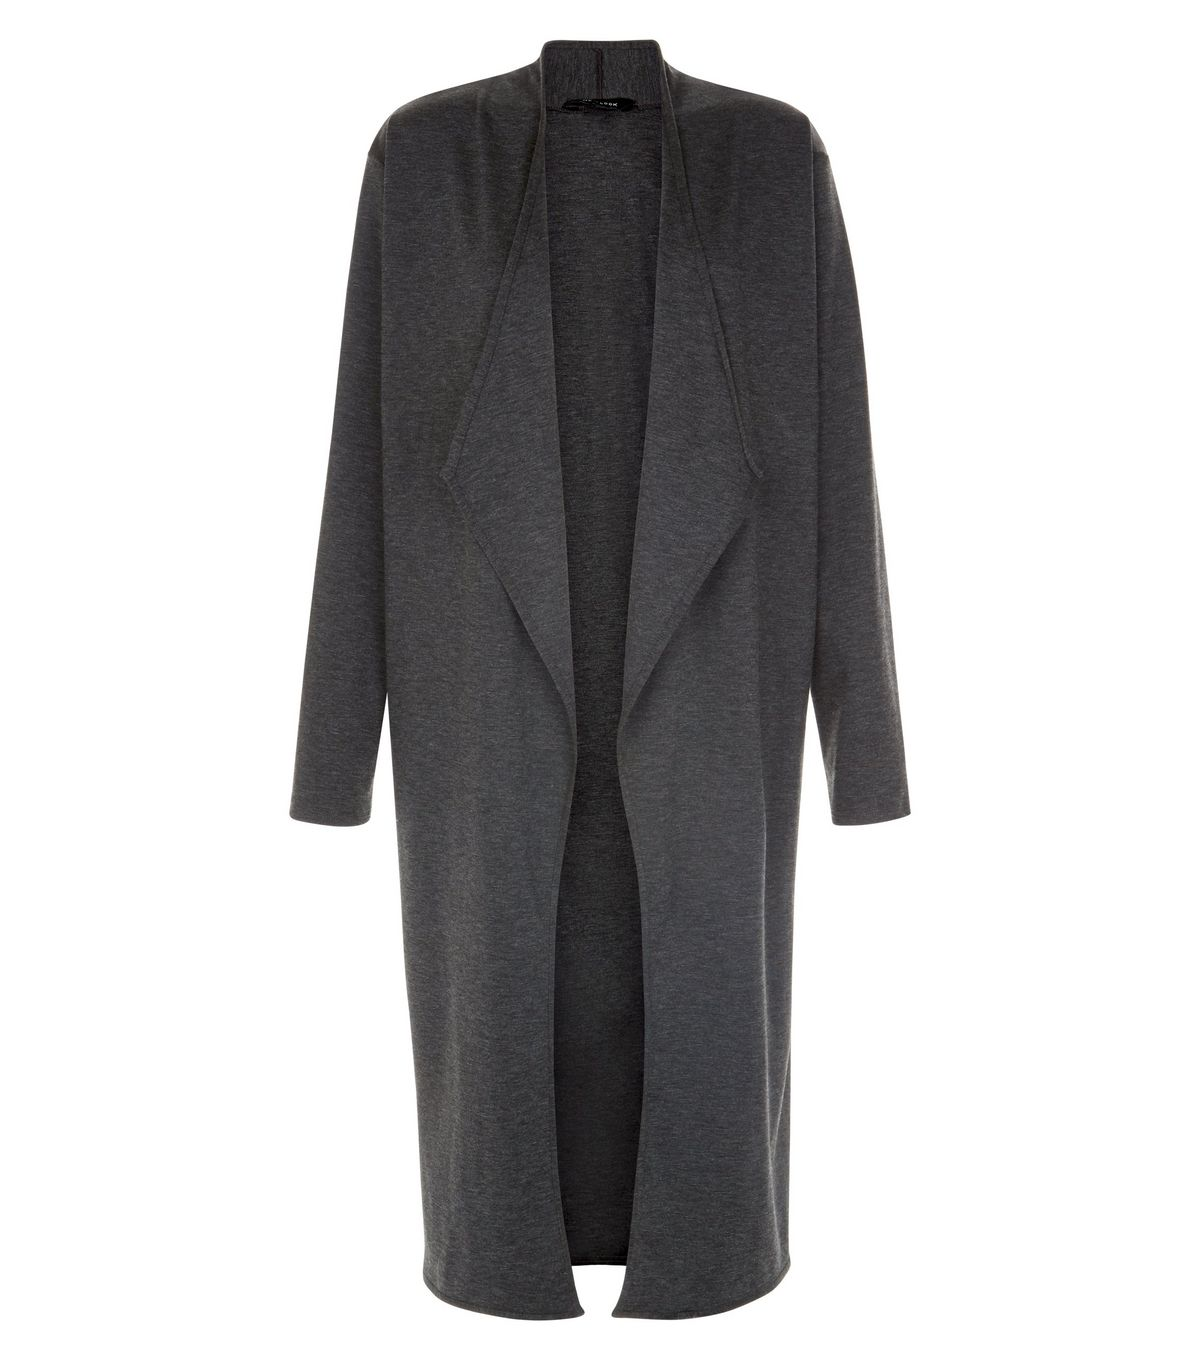 new look Grey Collarless Waterfall Longline Cardigan